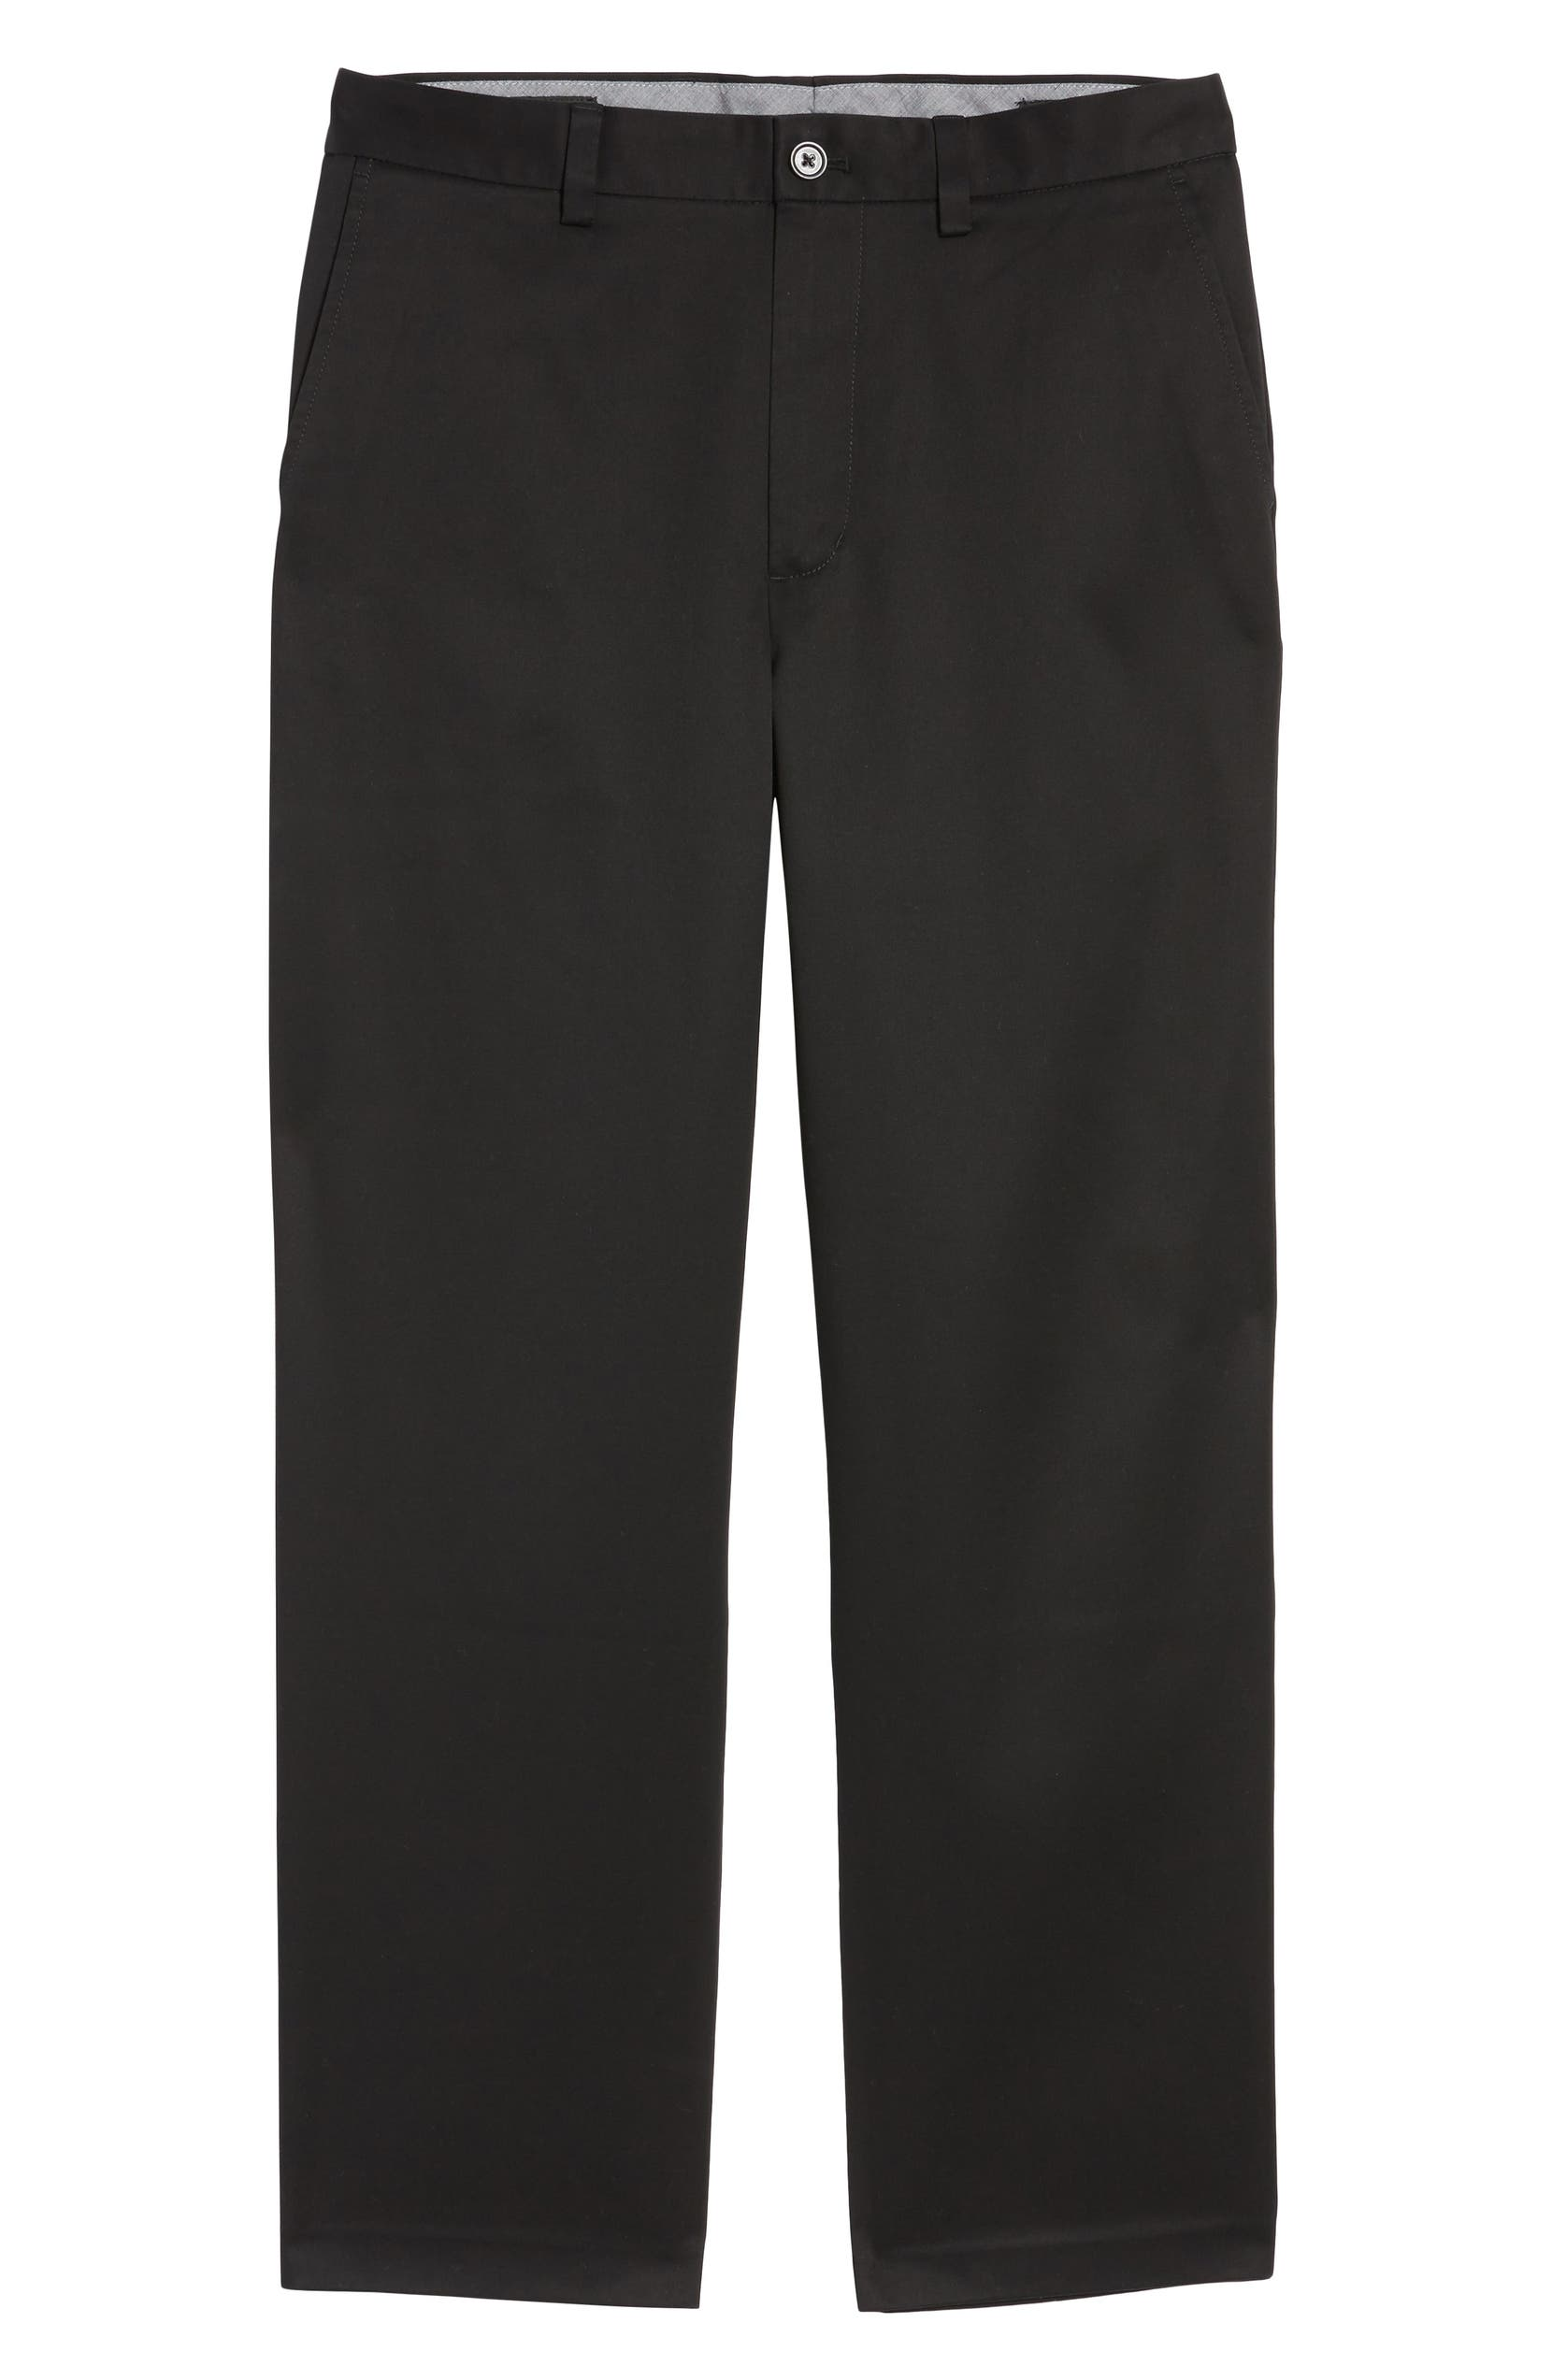 cccef46163 Nordstrom Men's Shop 'Classic' Smartcare™ Relaxed Fit Flat Front Cotton  Pants (Online Only) | Nordstrom